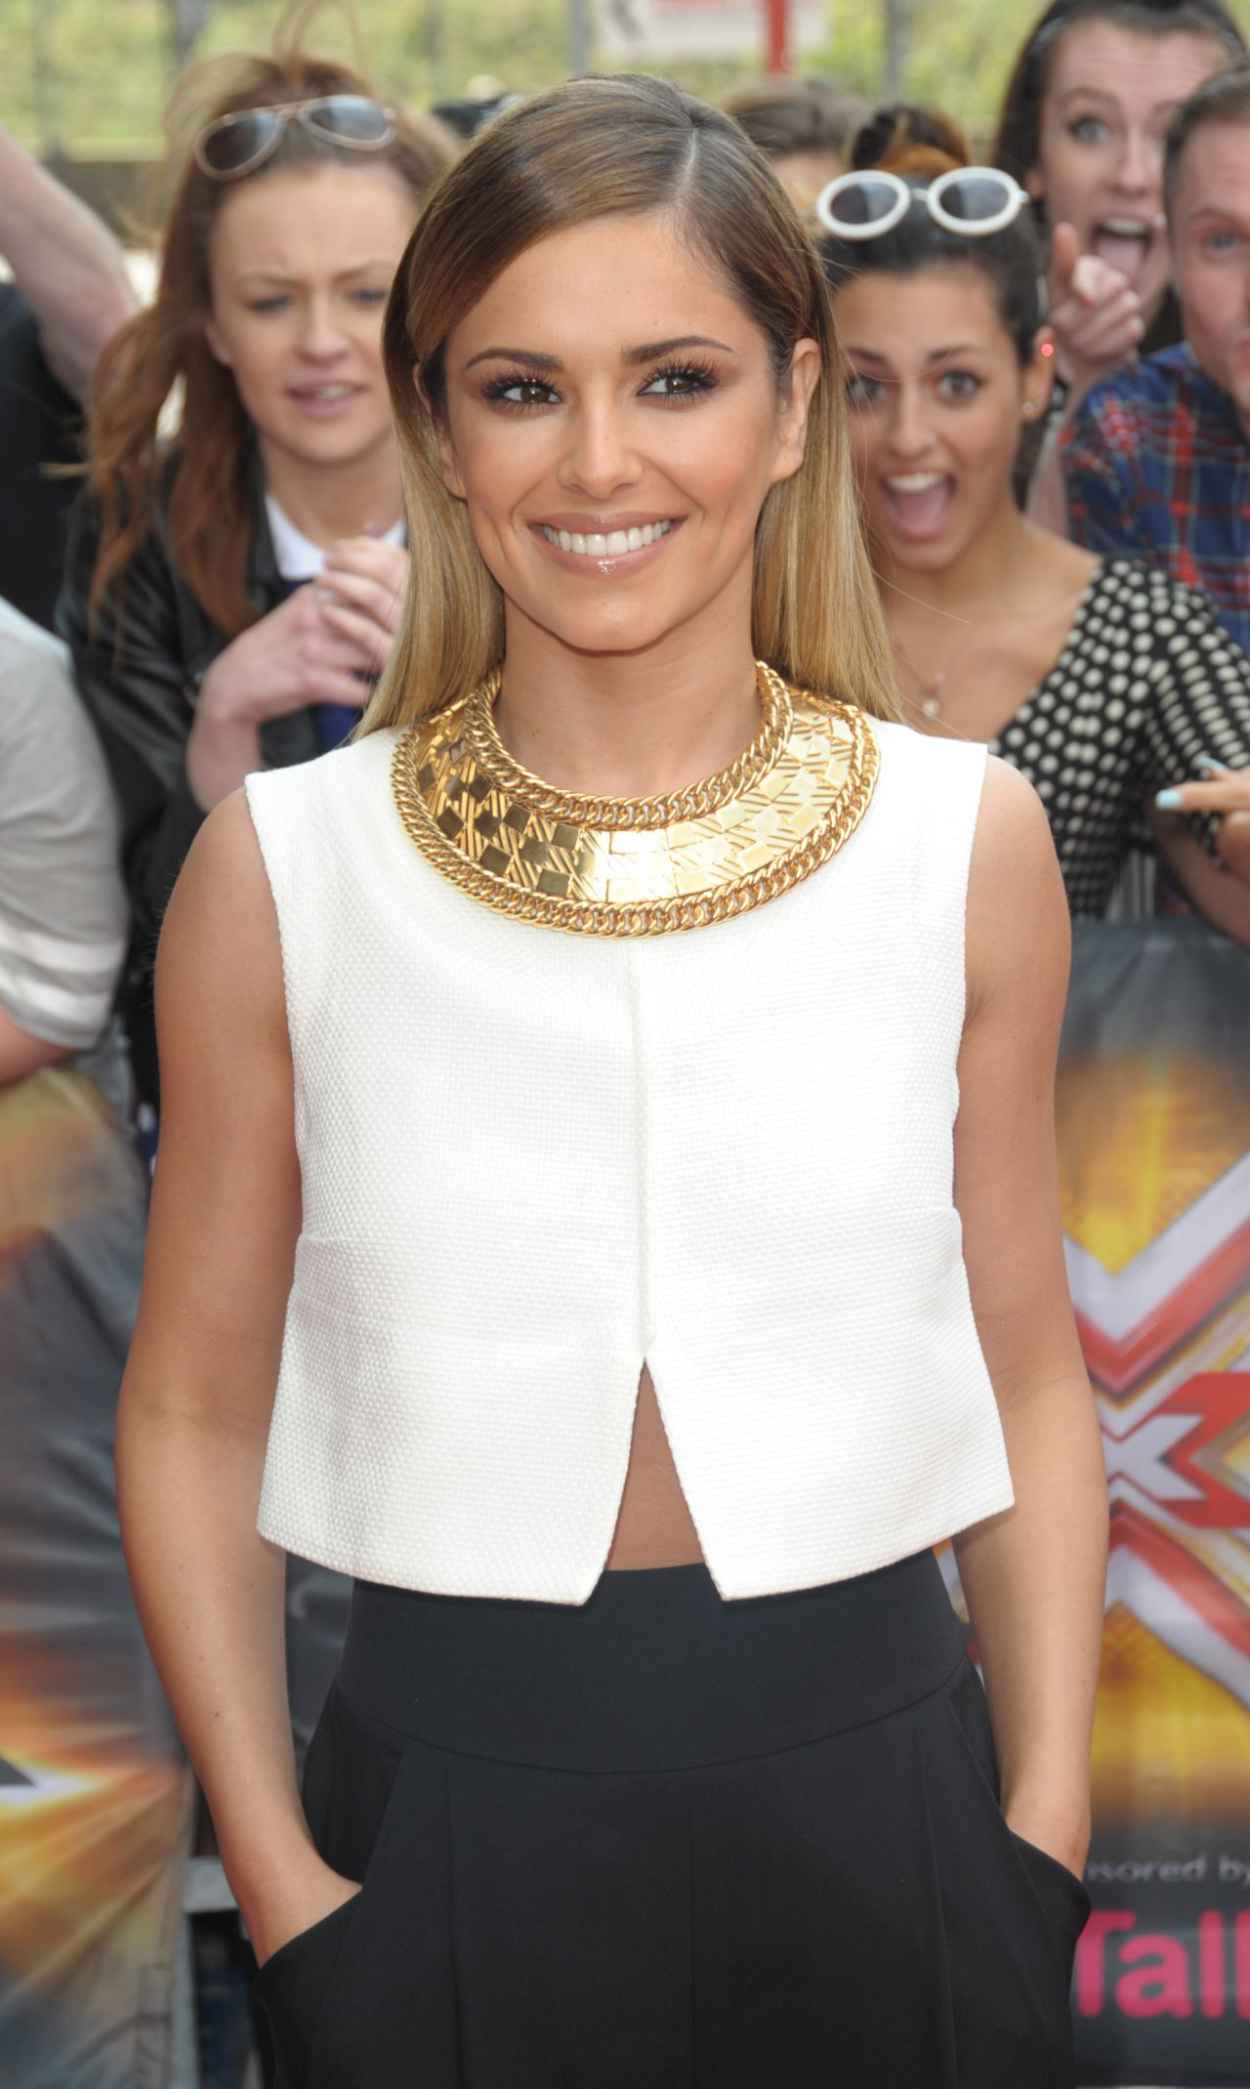 Cheryl Cole in the Monochrome Ensemble Arriving X Factor Auditions in London - June 2015-1